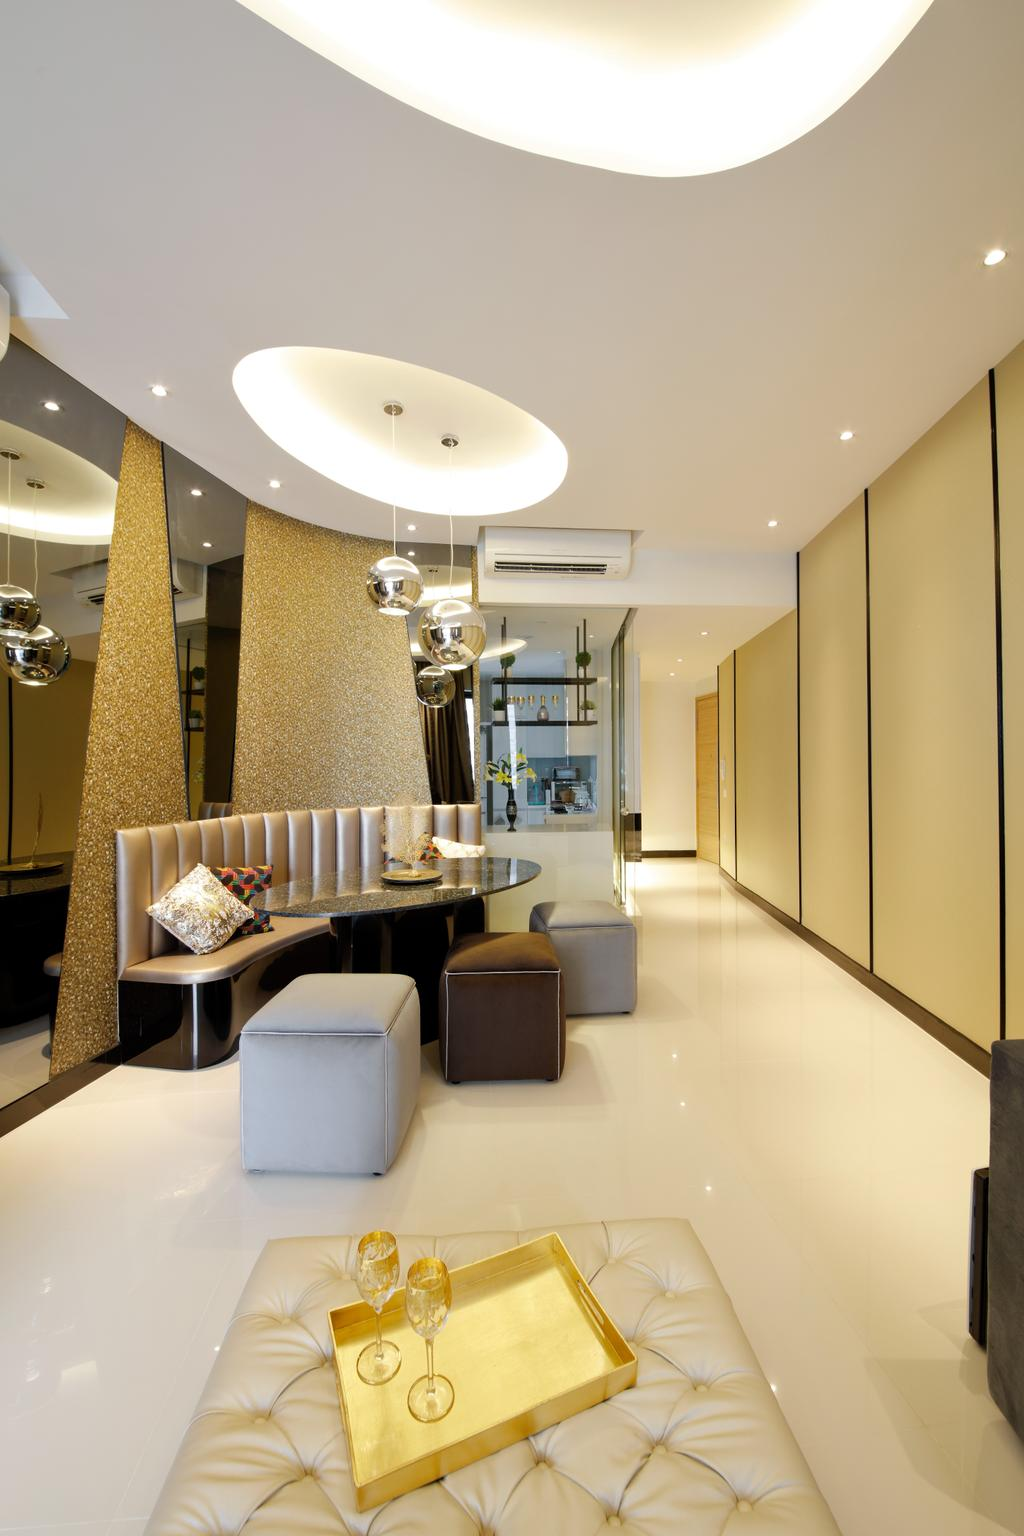 Modern, Condo, Dining Room, D'Leedon, Interior Designer, Free Space Intent, Eclectic, Contemporary, Indoors, Interior Design, Room, Couch, Furniture, Arch, Arched, Architecture, Building, Vault Ceiling, Dining Table, Table